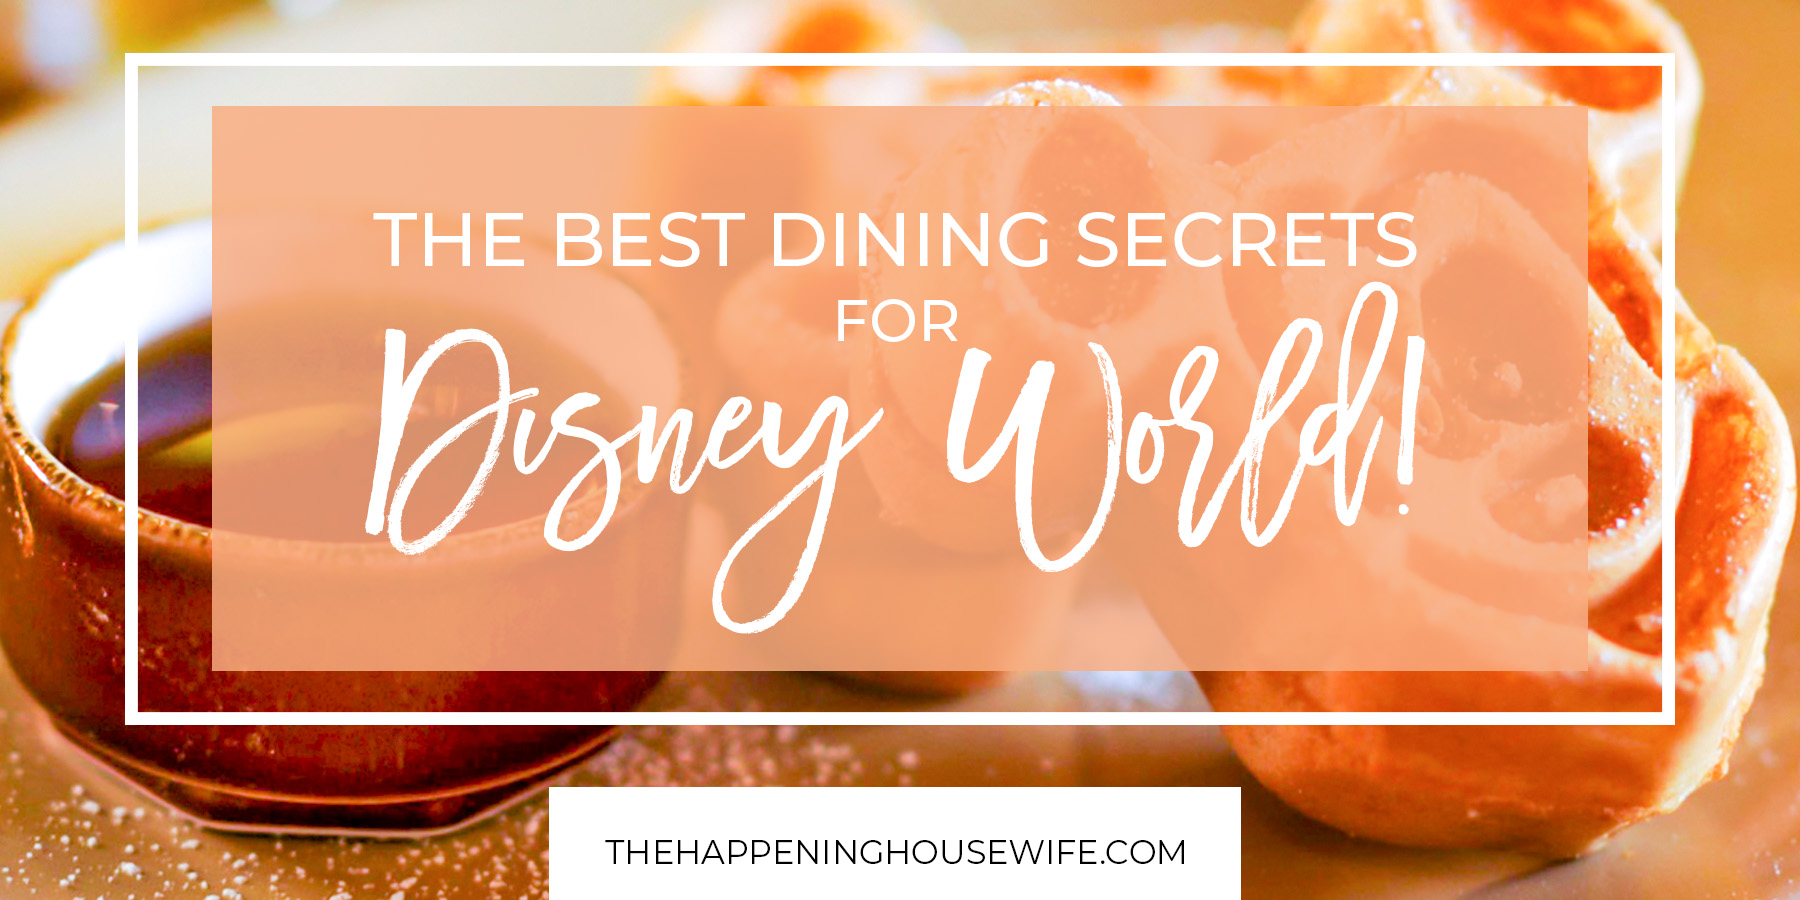 The Best Dining Secrets For Disney World! Tips for eating at Disney